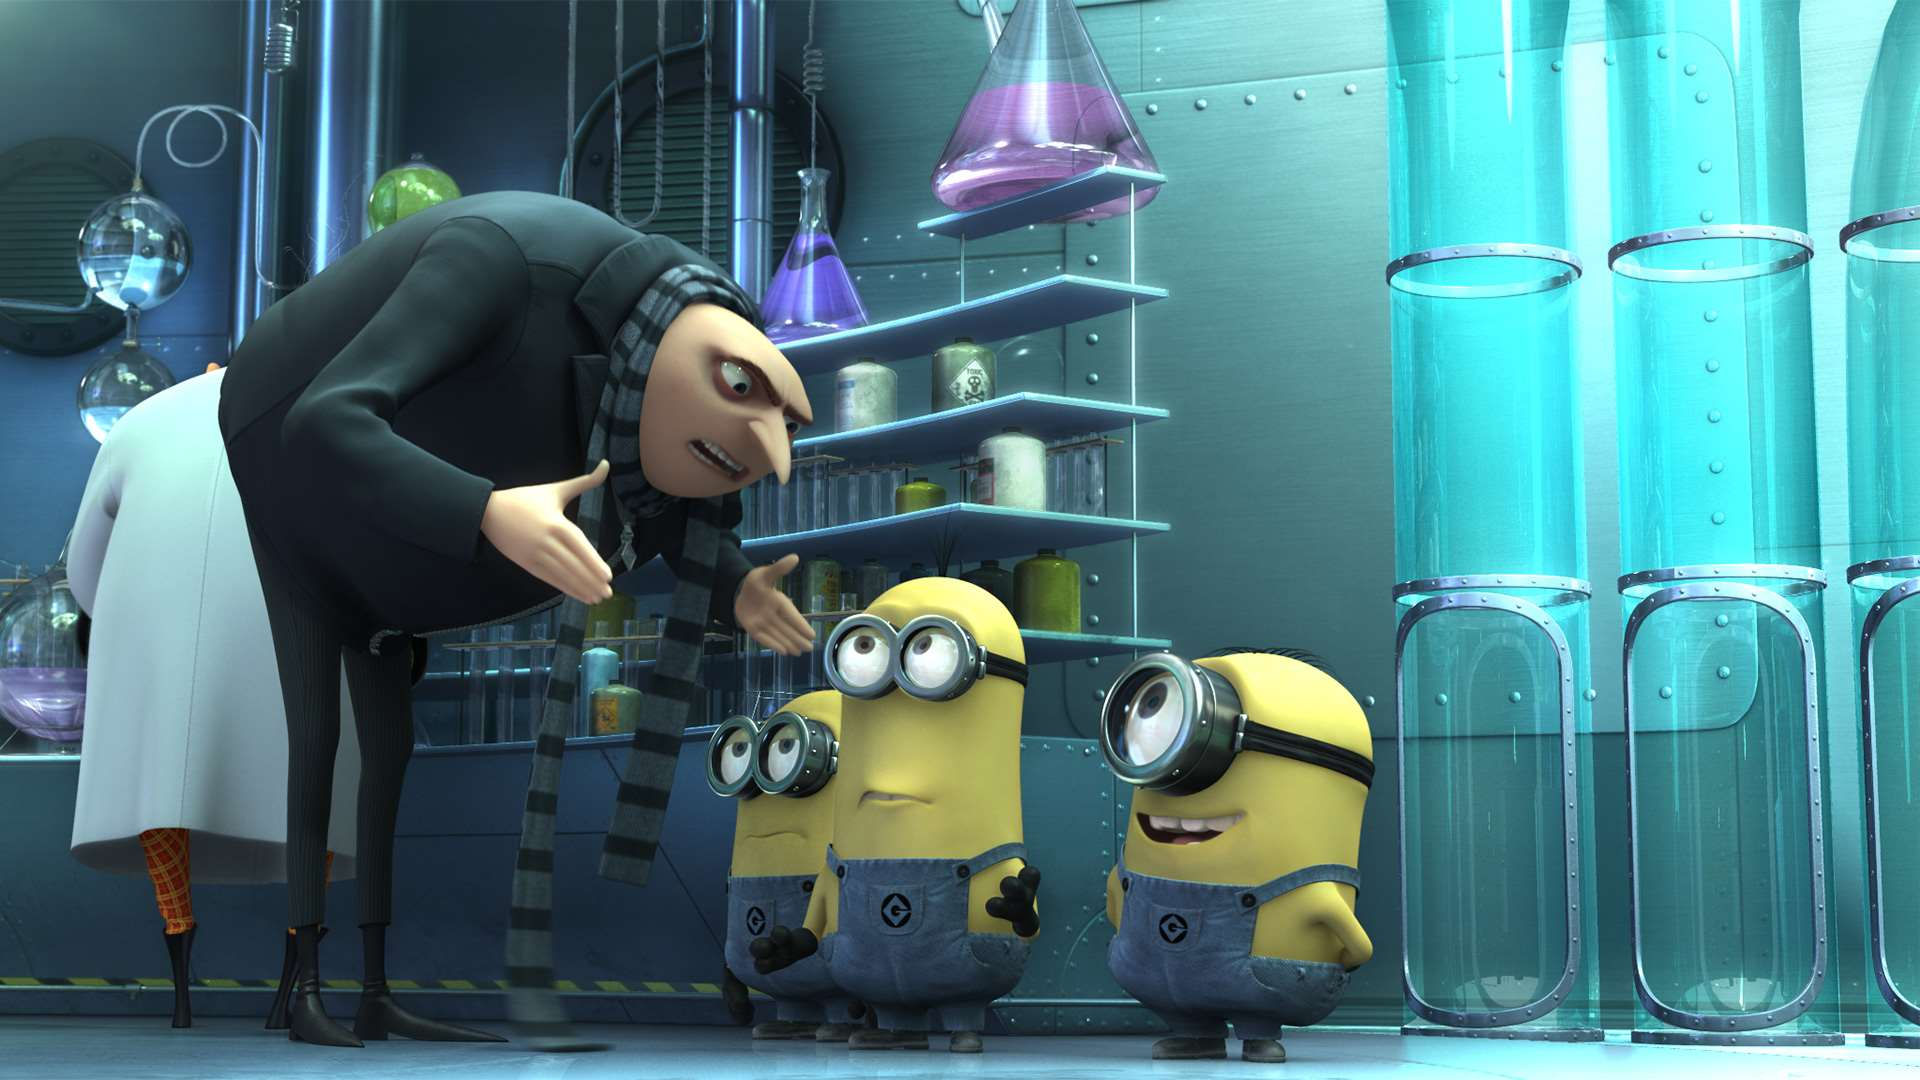 The super-villain Gru (voiced by Steve Carell) and the Minions in Despicable Me (2010)